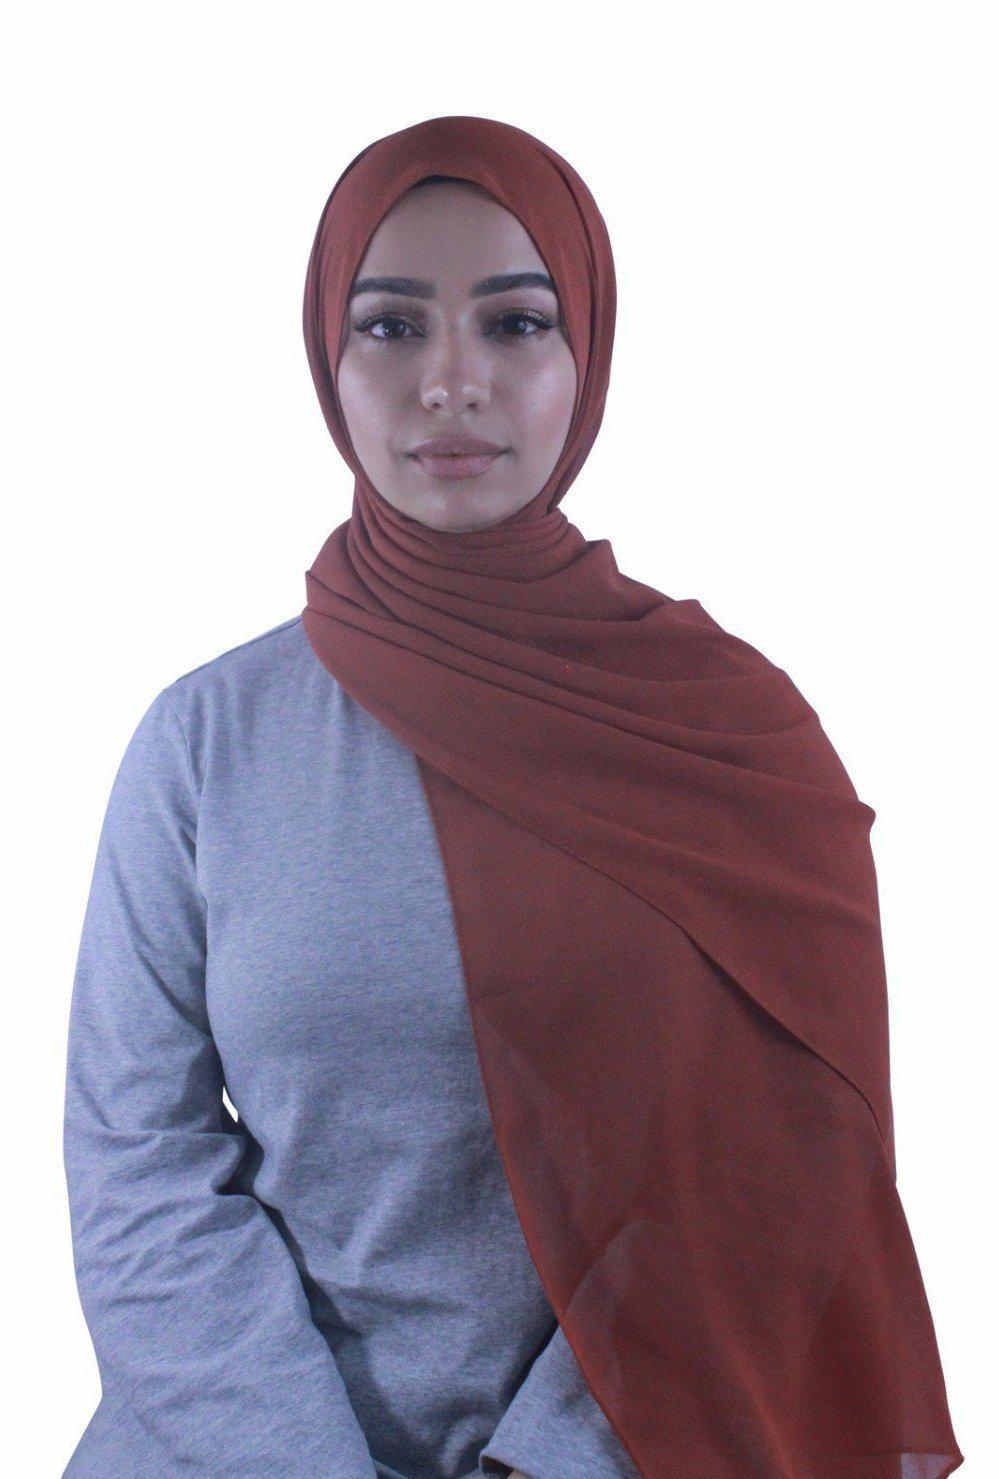 Brick Chiffon Hijab Head Scarf - Abaya, Hijabs, Jilbabs, on sale now at UrbanModesty.com